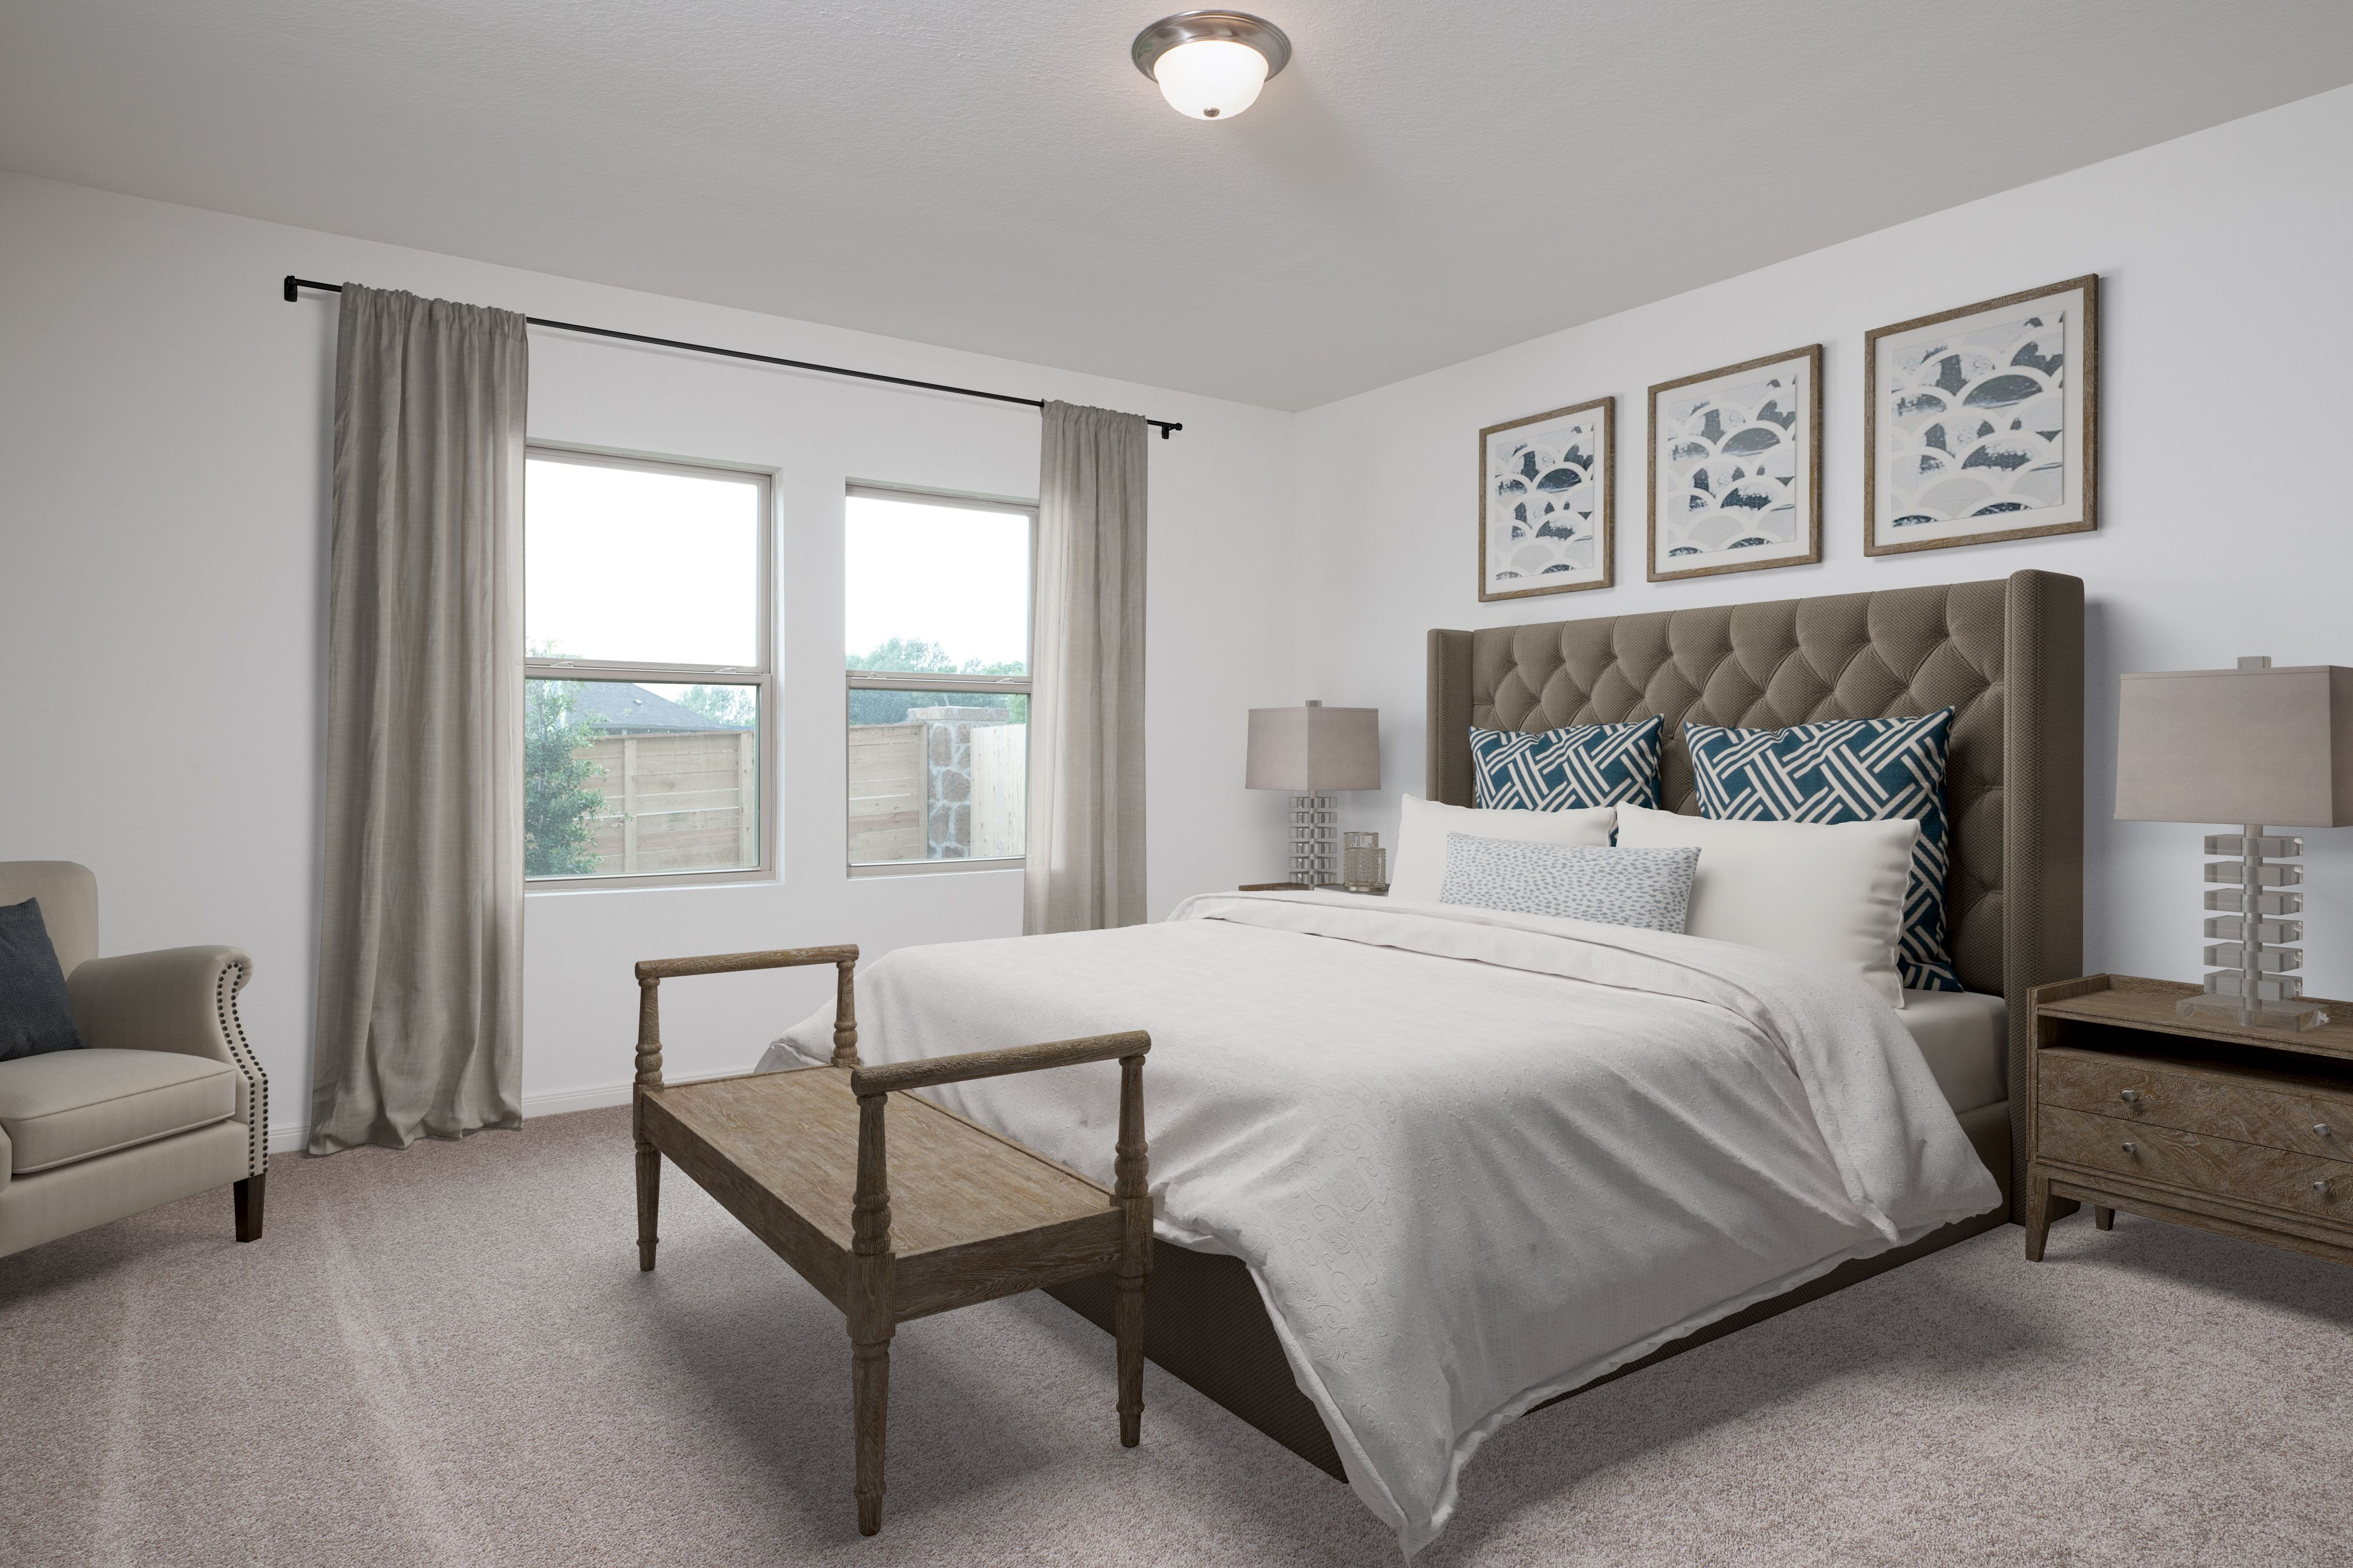 Bedroom featured in the Moonbeam By Starlight Homes in San Antonio, TX